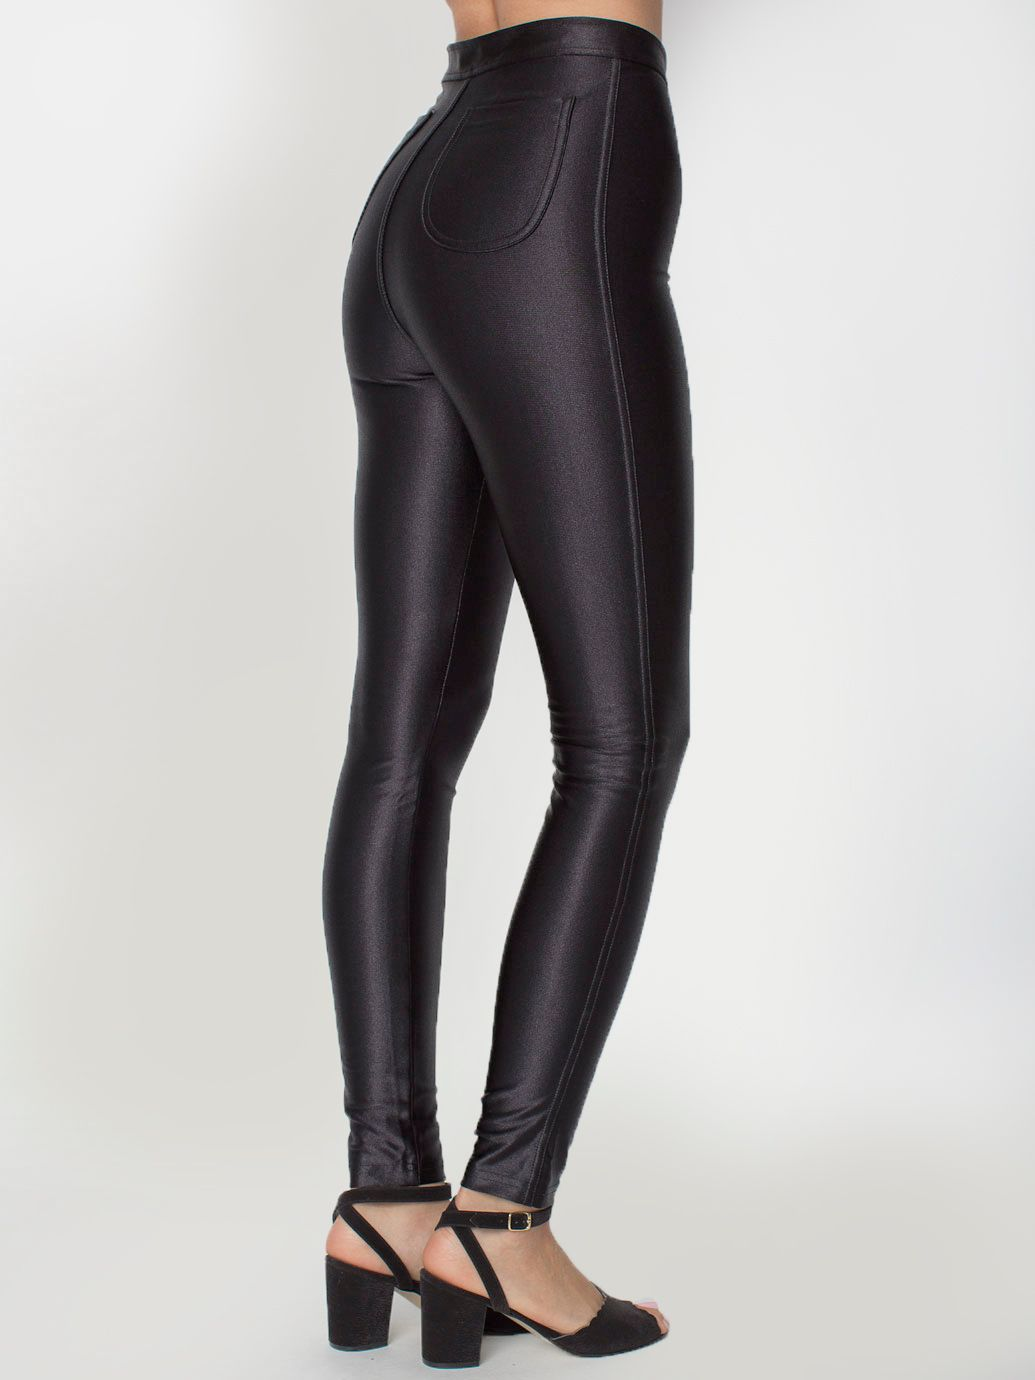 Find great deals on eBay for plus size disco pants. Shop with confidence. Skip to main content. eBay: Shop by category. NEW WOMENS PLUS SIZE AMERICAN DISCO STRETCH SHINY LADIES PANTS LEGGINGS Brand New. $ From United .